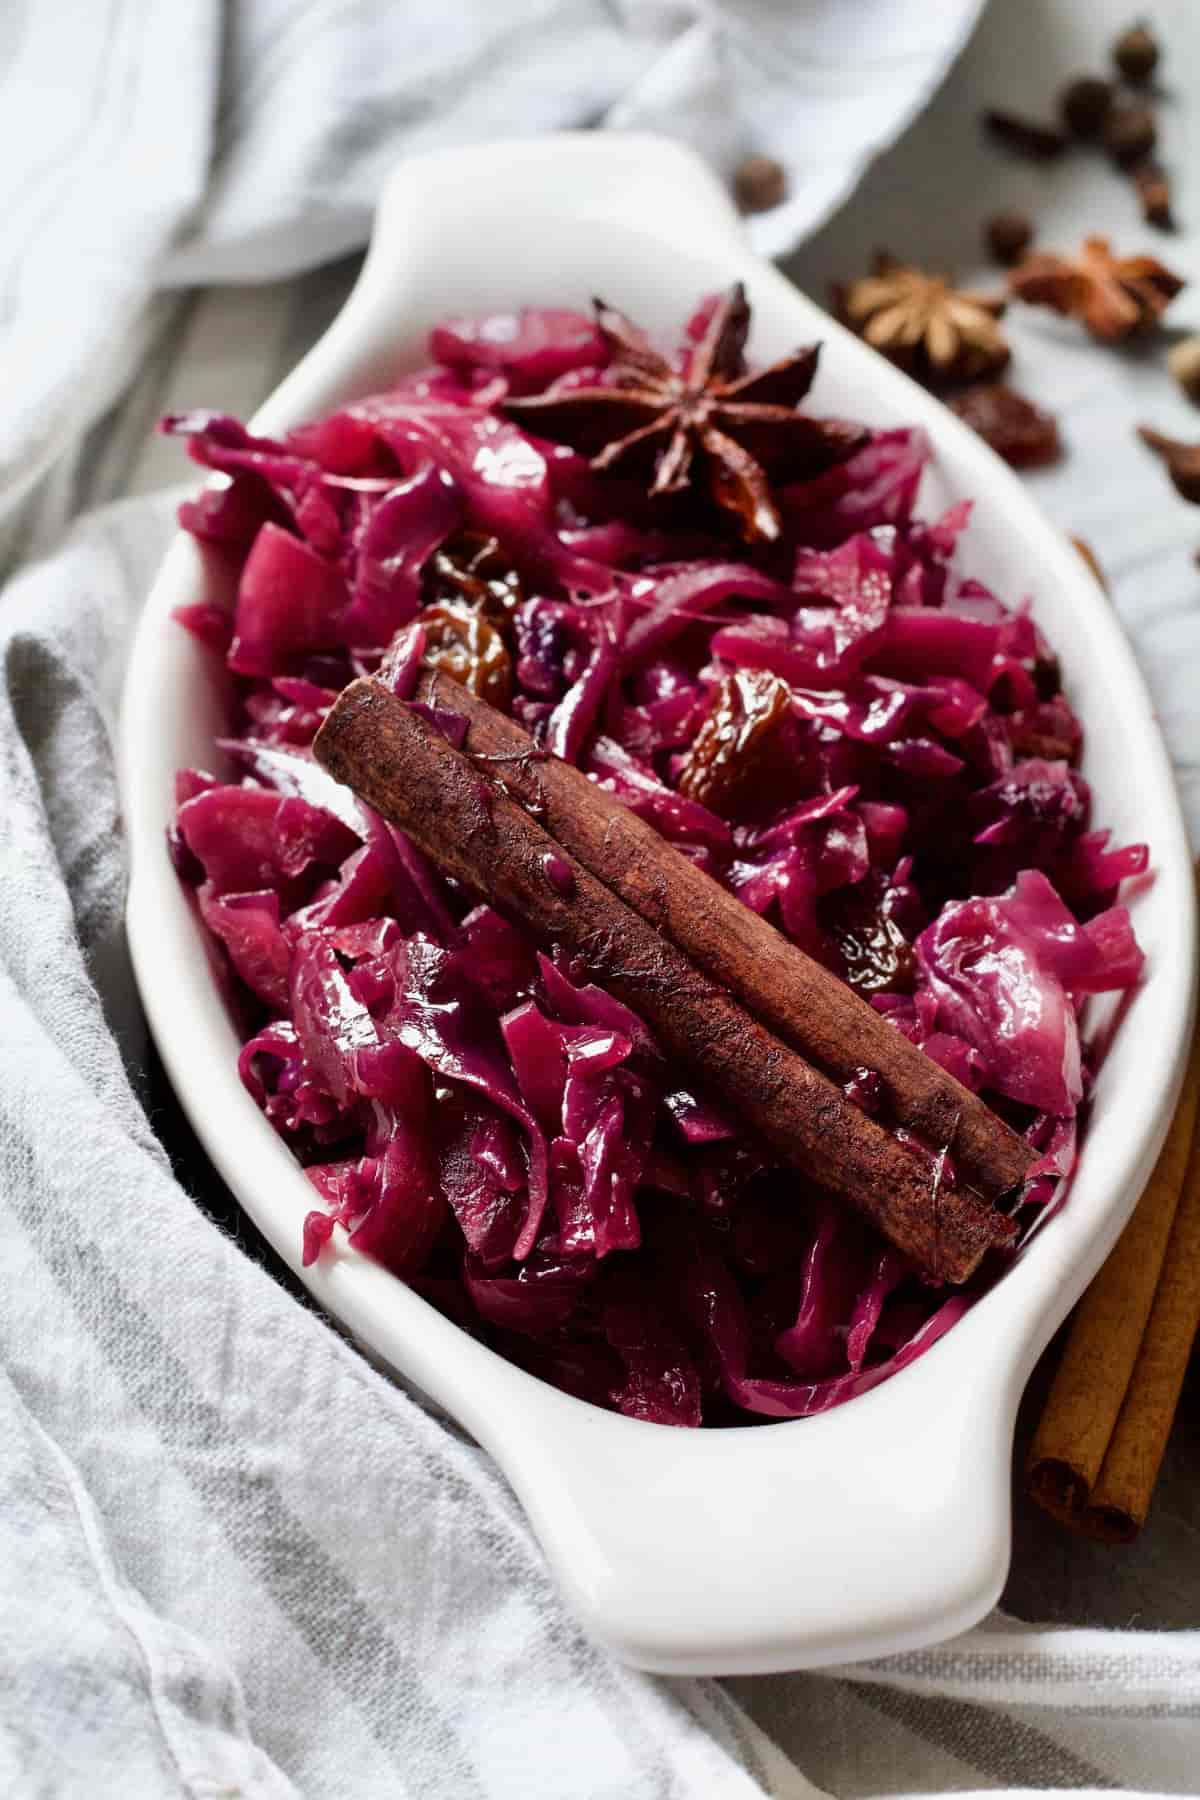 Red cabbage in a white oval dish with cinnamon stick.